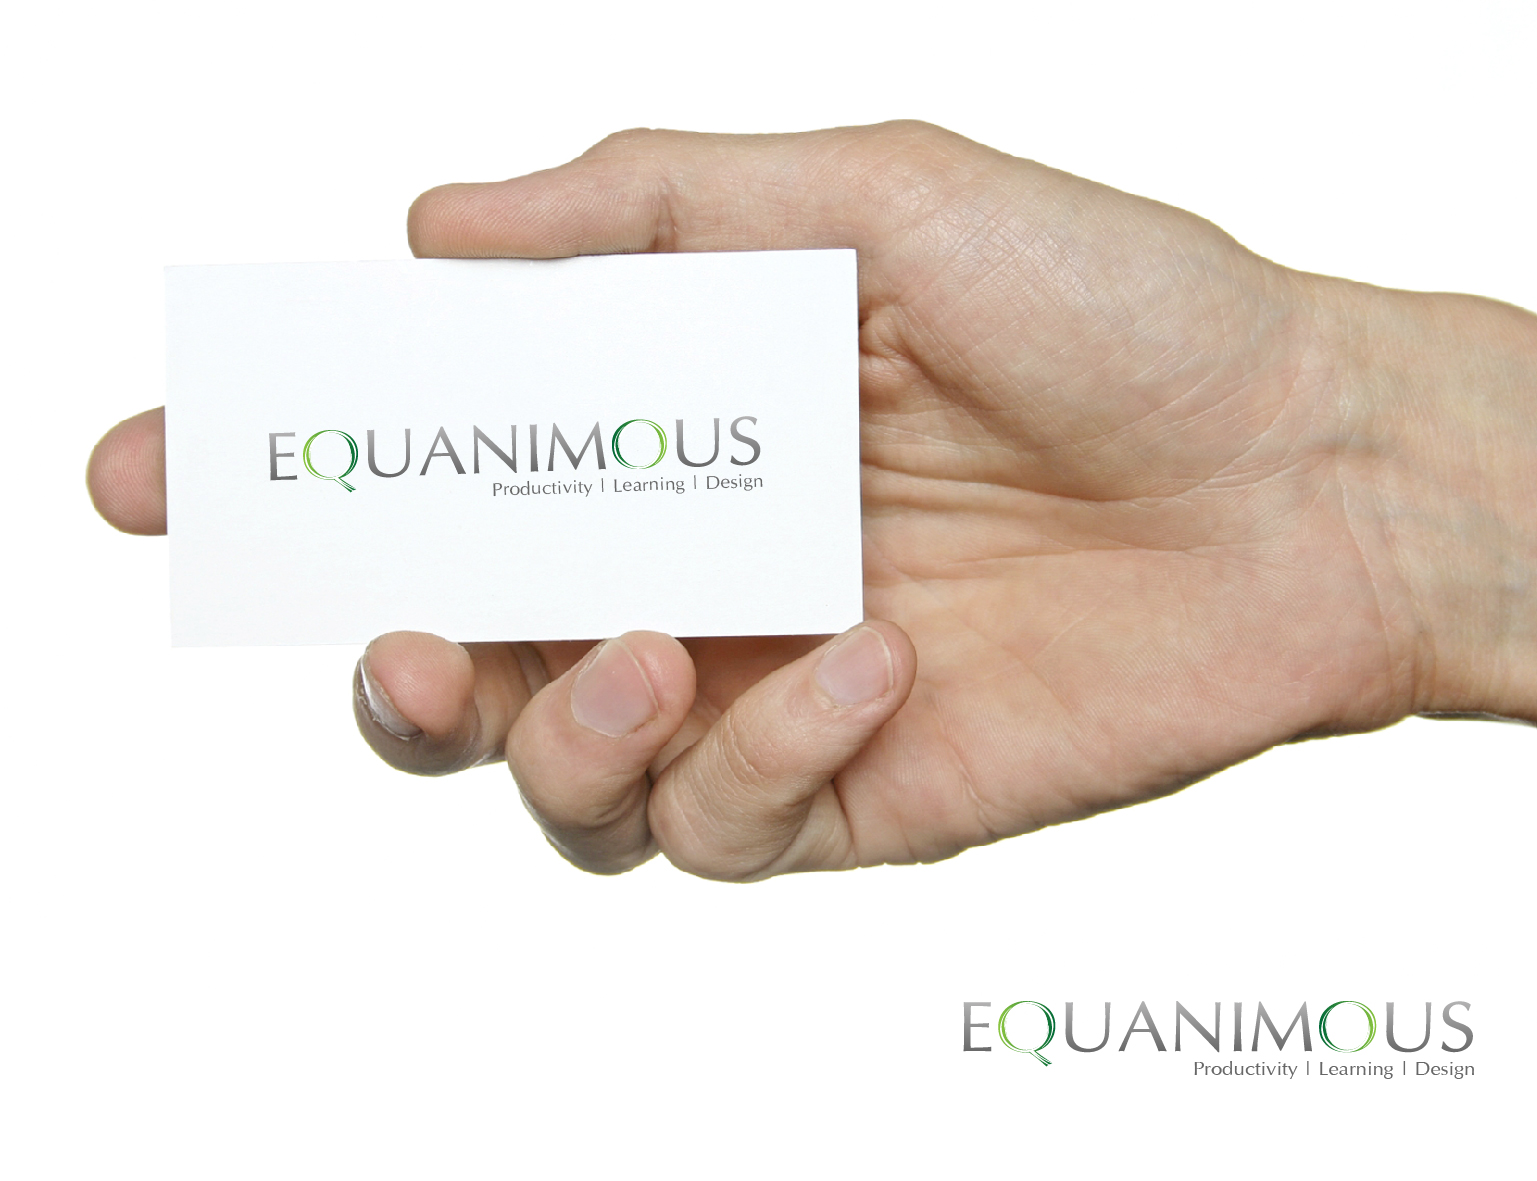 Logo Design by 3draw - Entry No. 532 in the Logo Design Contest Logo Design : EQUANIMOUS : Productivity | Learning | Design.